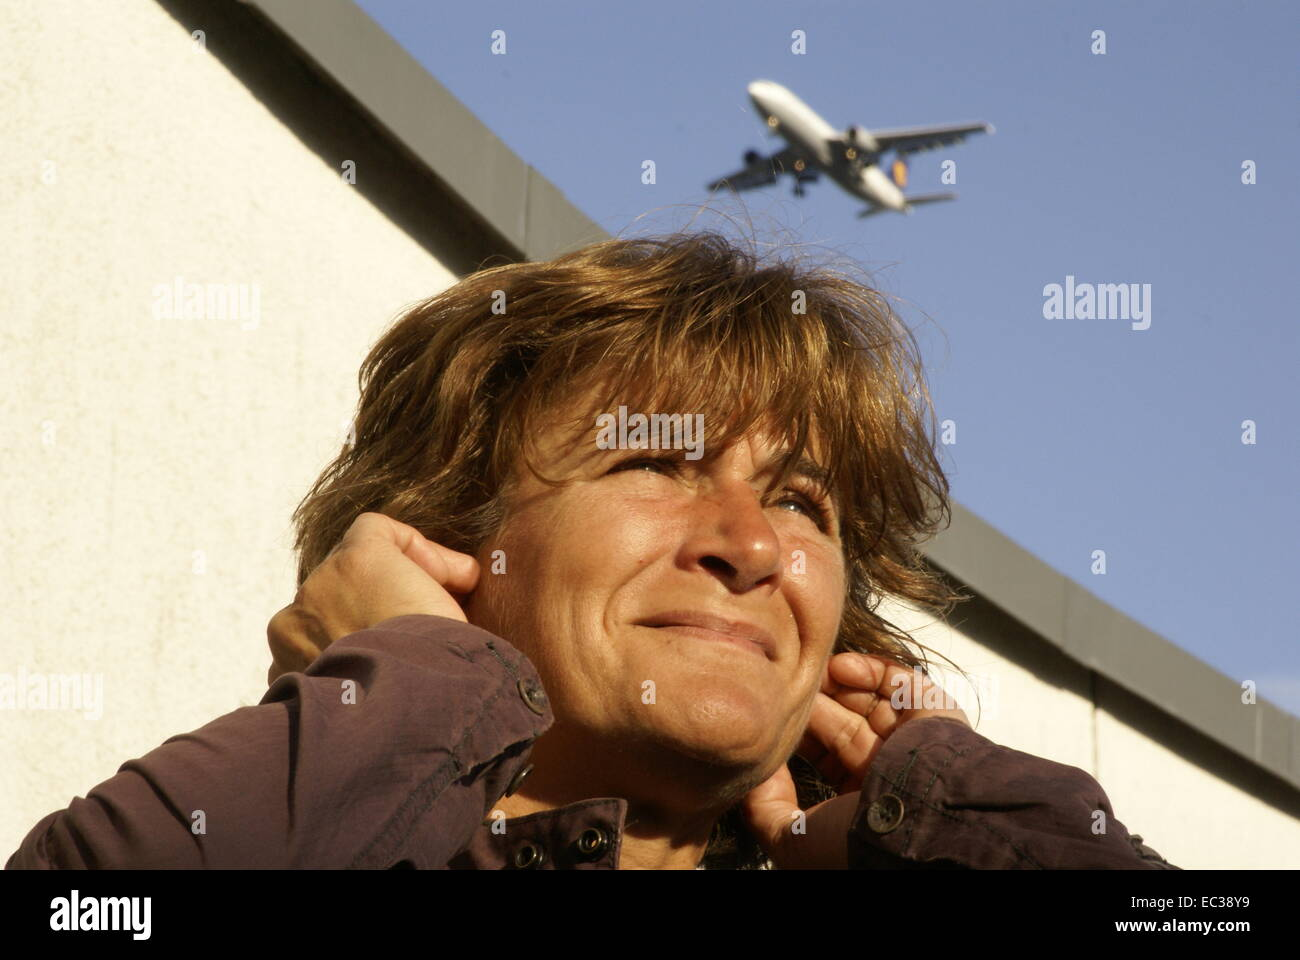 Disturbance by Aircraft Noise - Stock Image